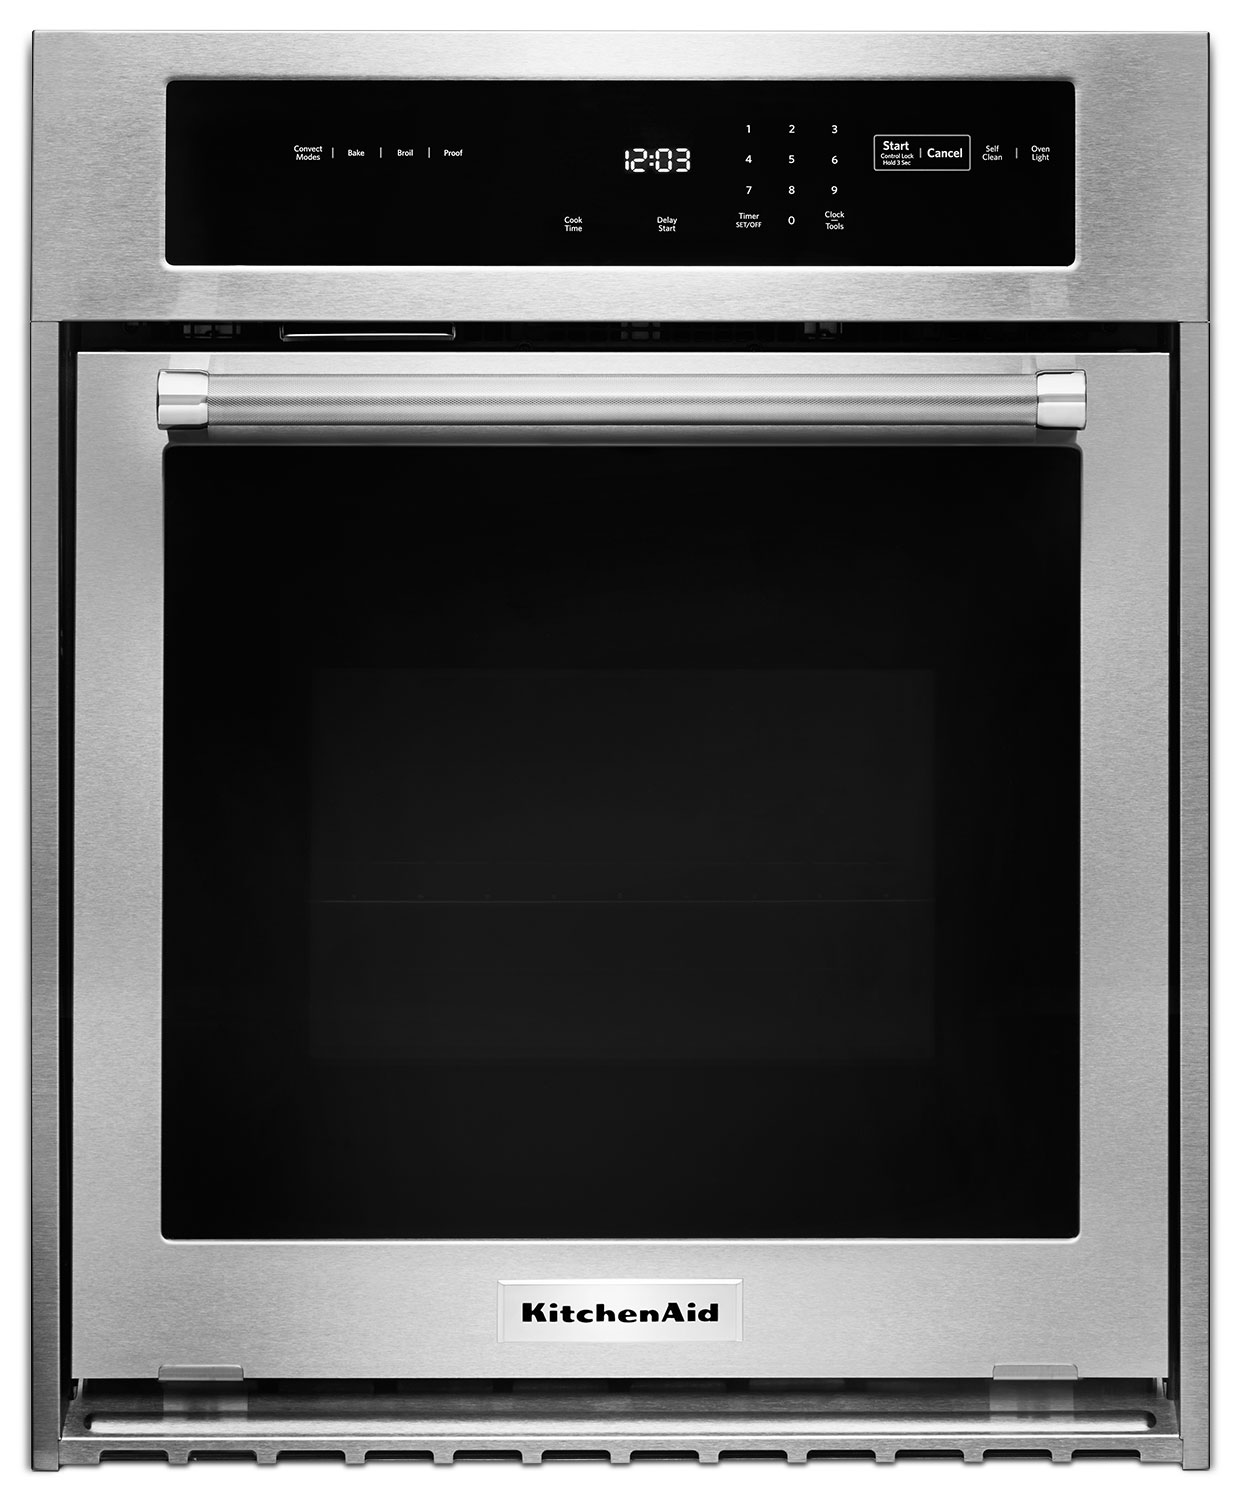 Cooking Products - KitchenAid Stainless Steel Electric True Convection Wall Oven (3.1 Cu. Ft.) - KOSC504ESS